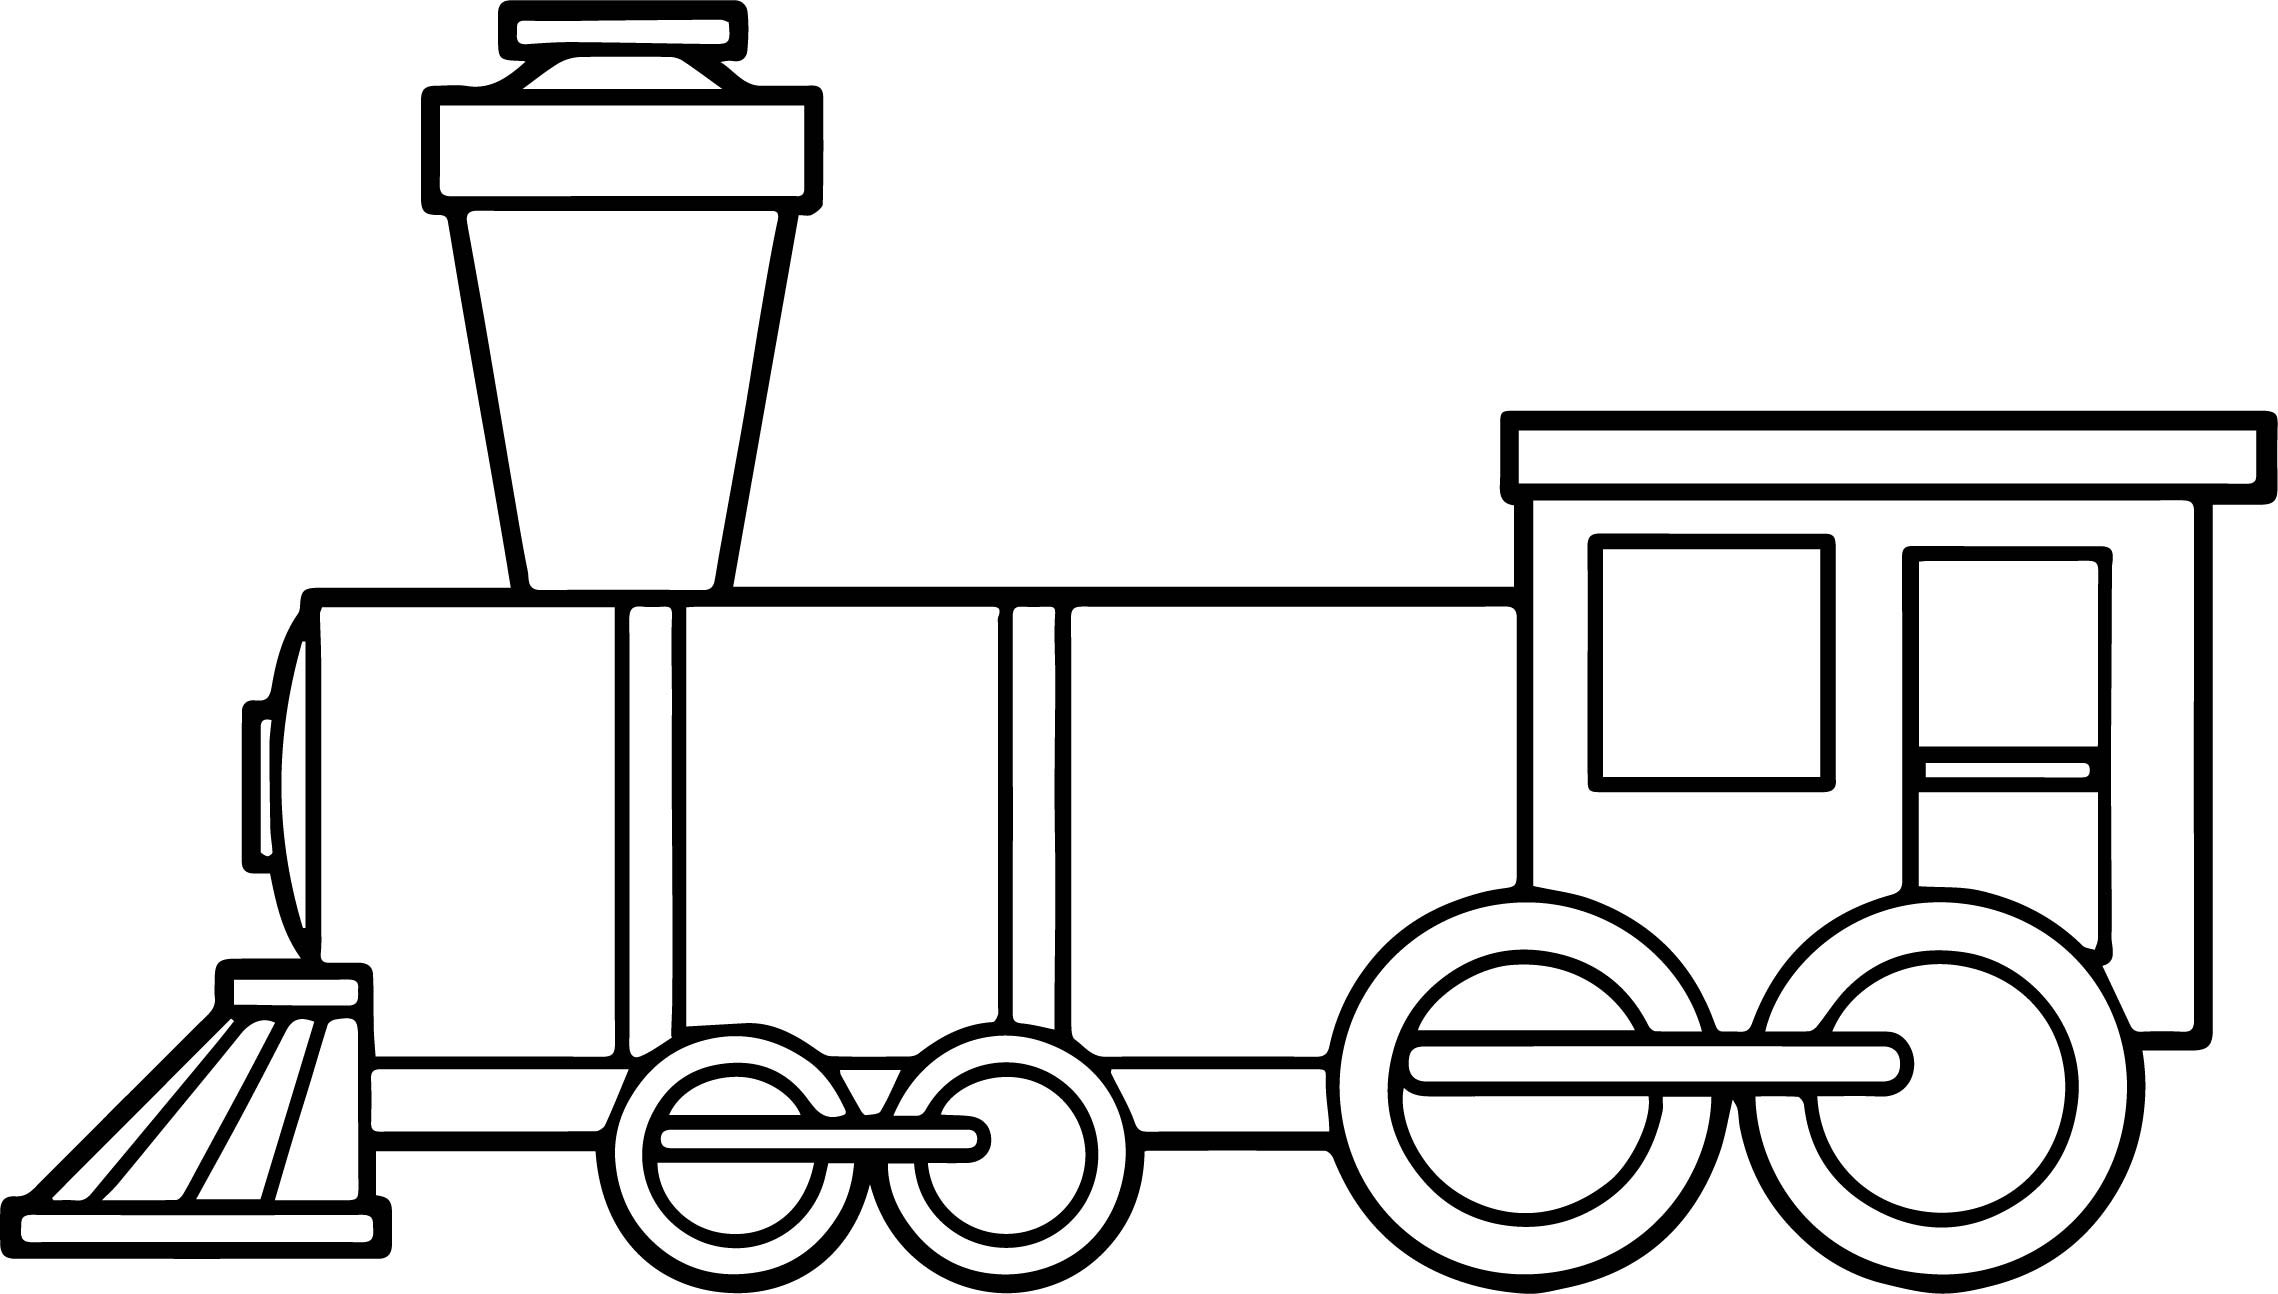 12486 Train free clipart.